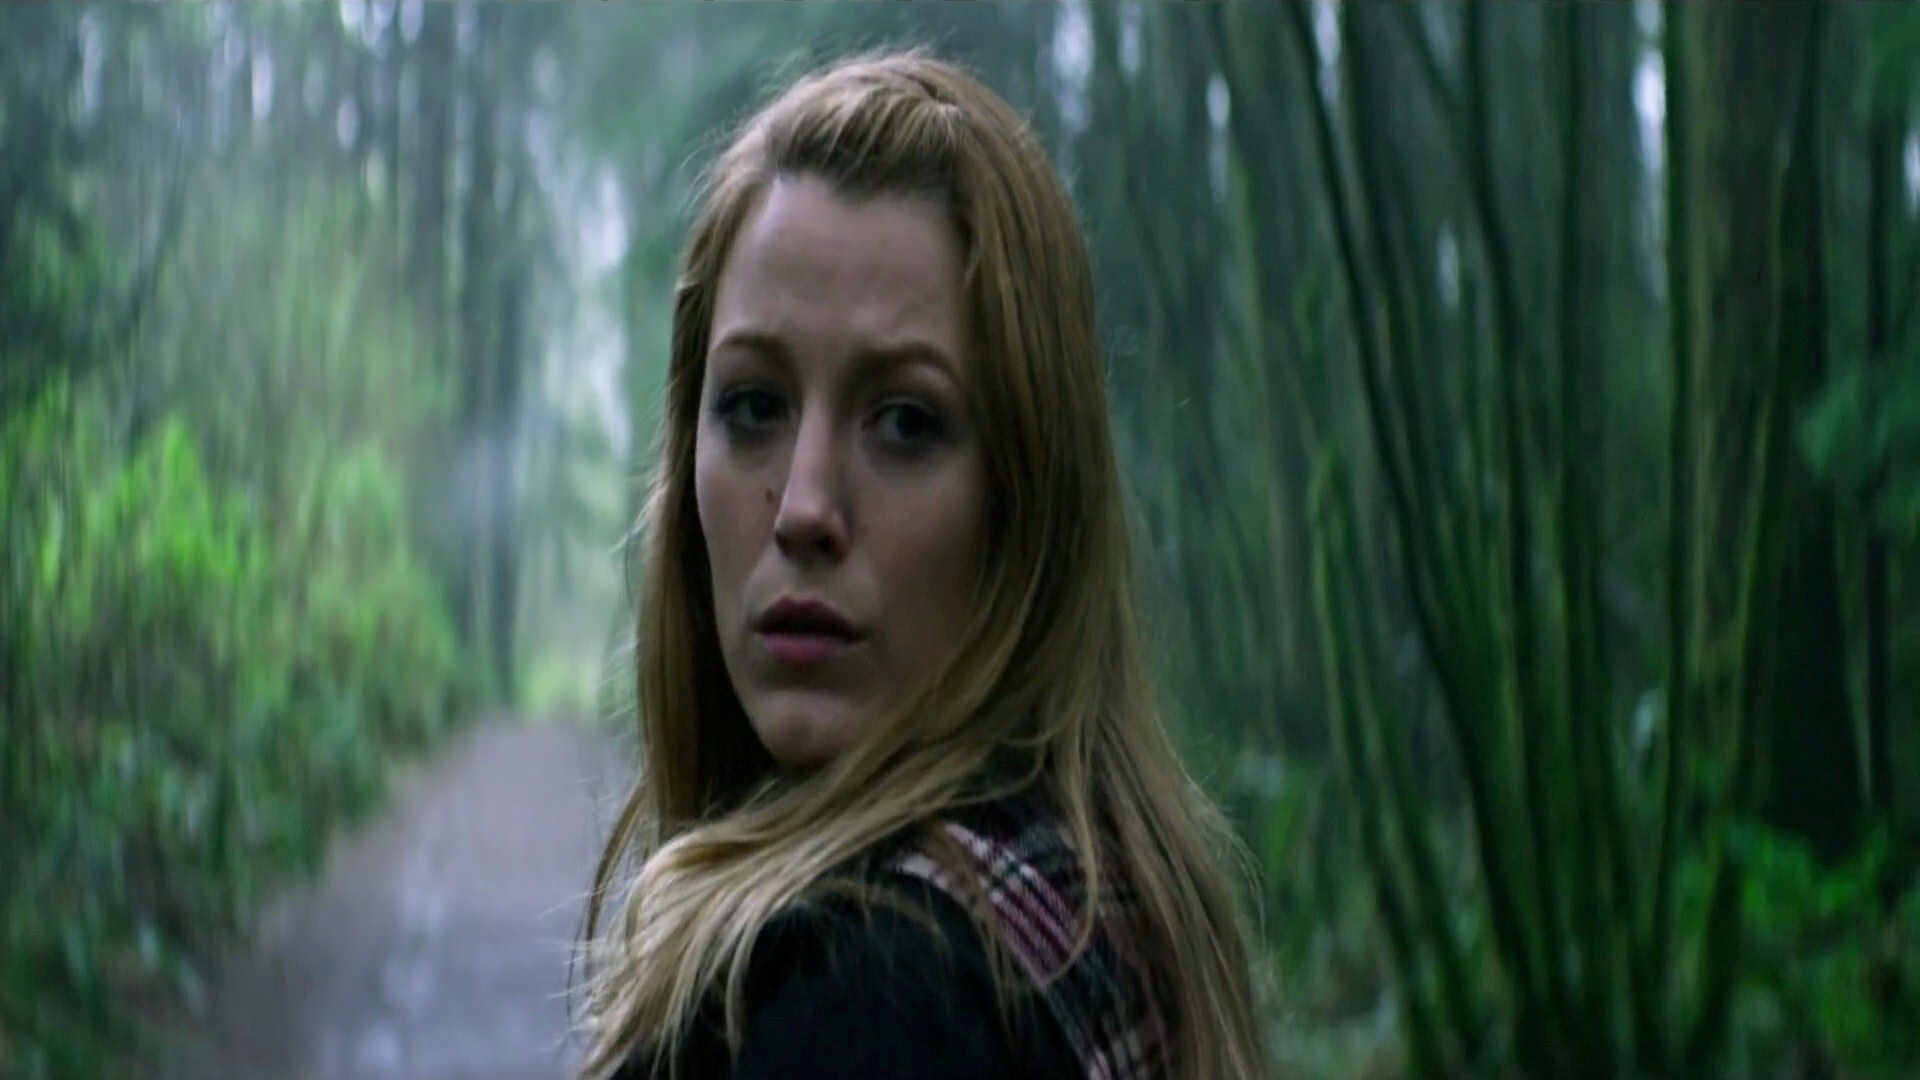 Beautiful Actress Blake Lively In Hollywood Movie The Age Of Adaline